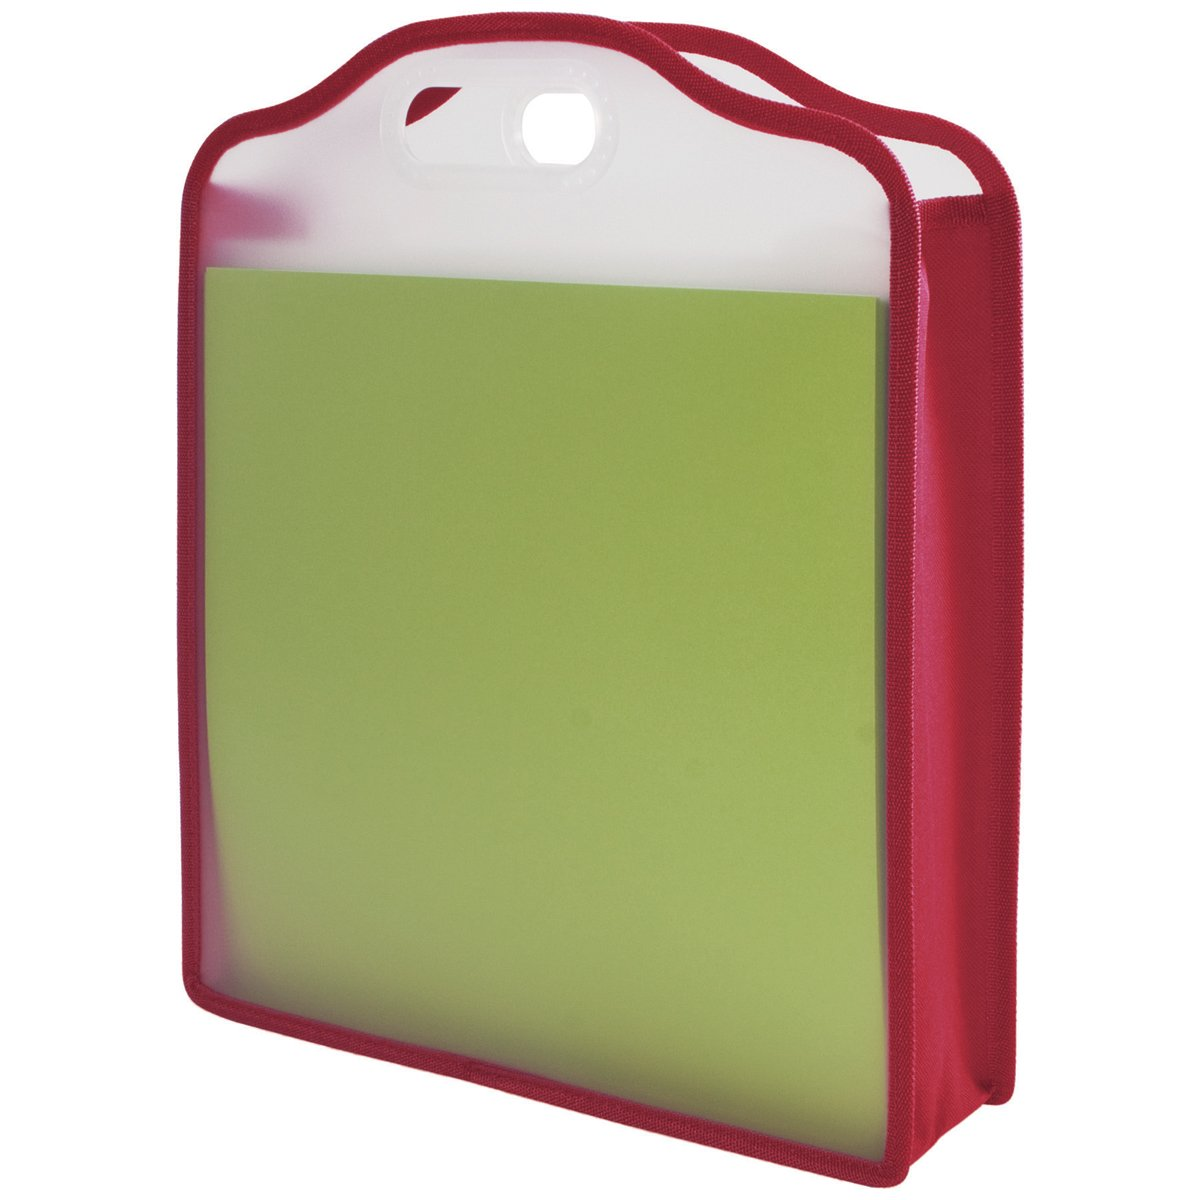 Storage Studios Expanding Paper Folio for 12x12 Sheets, 15.75x13x3-Inch, Color May Vary, CH93391 Advantus Corp.